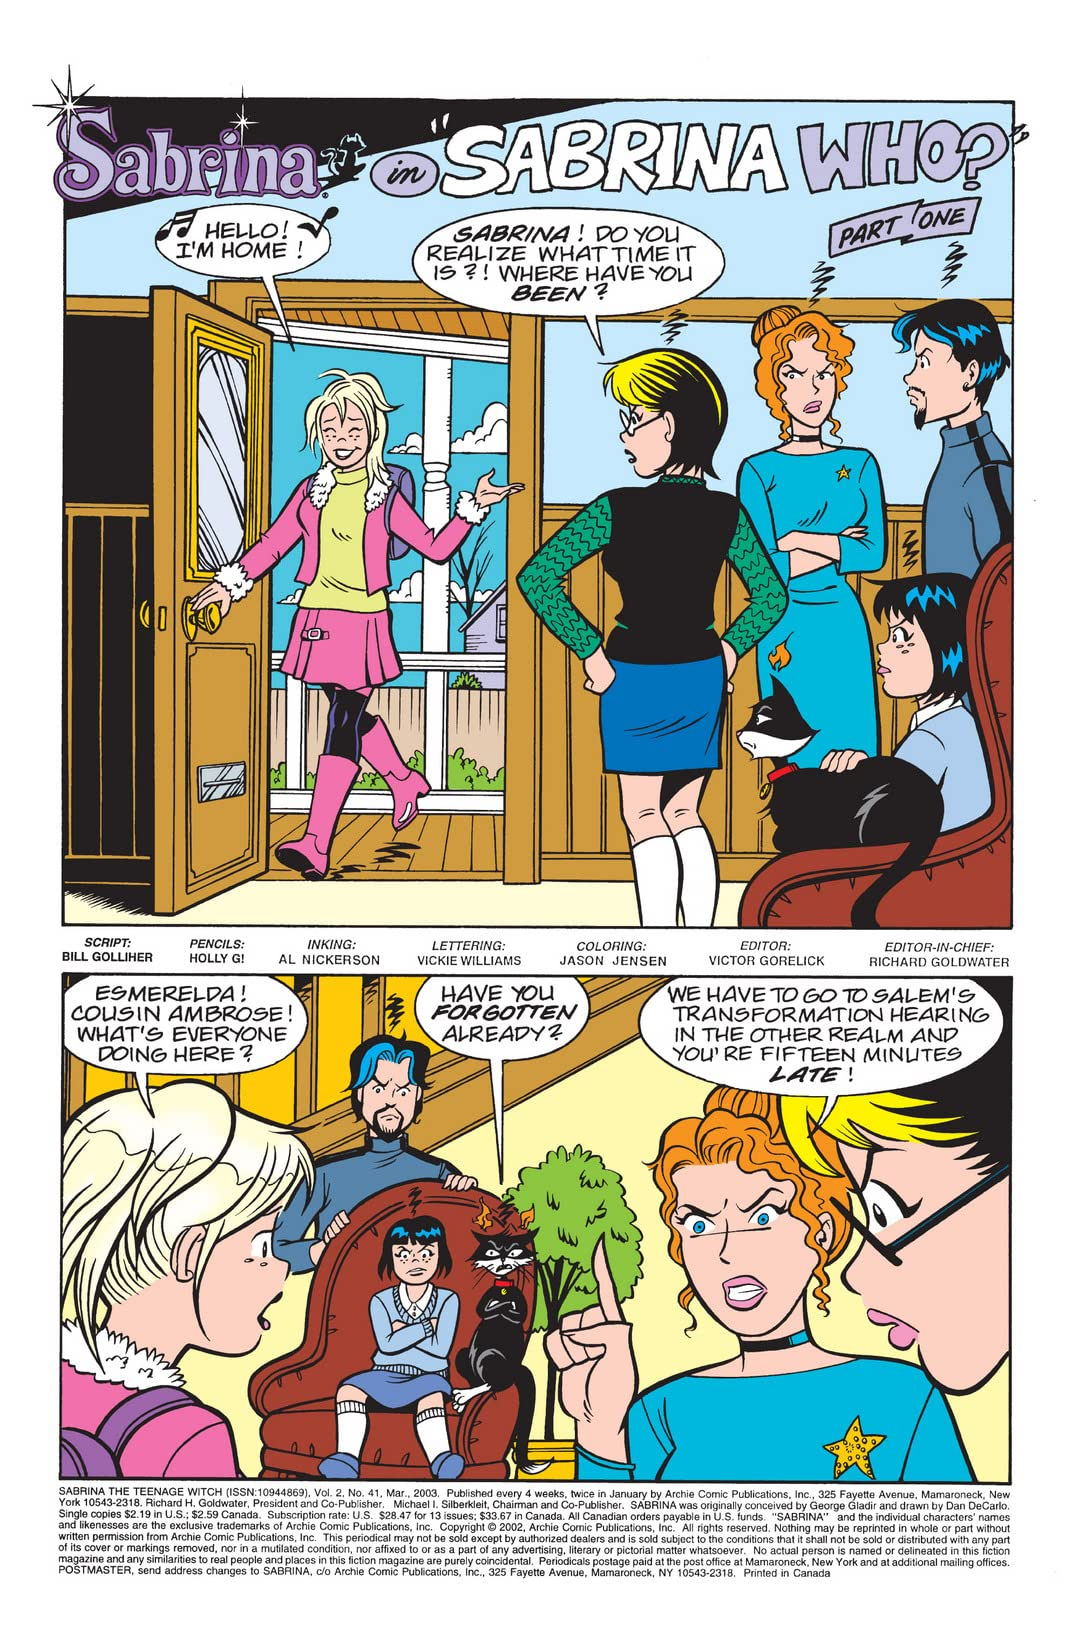 Sabrina the Teenage Witch #41